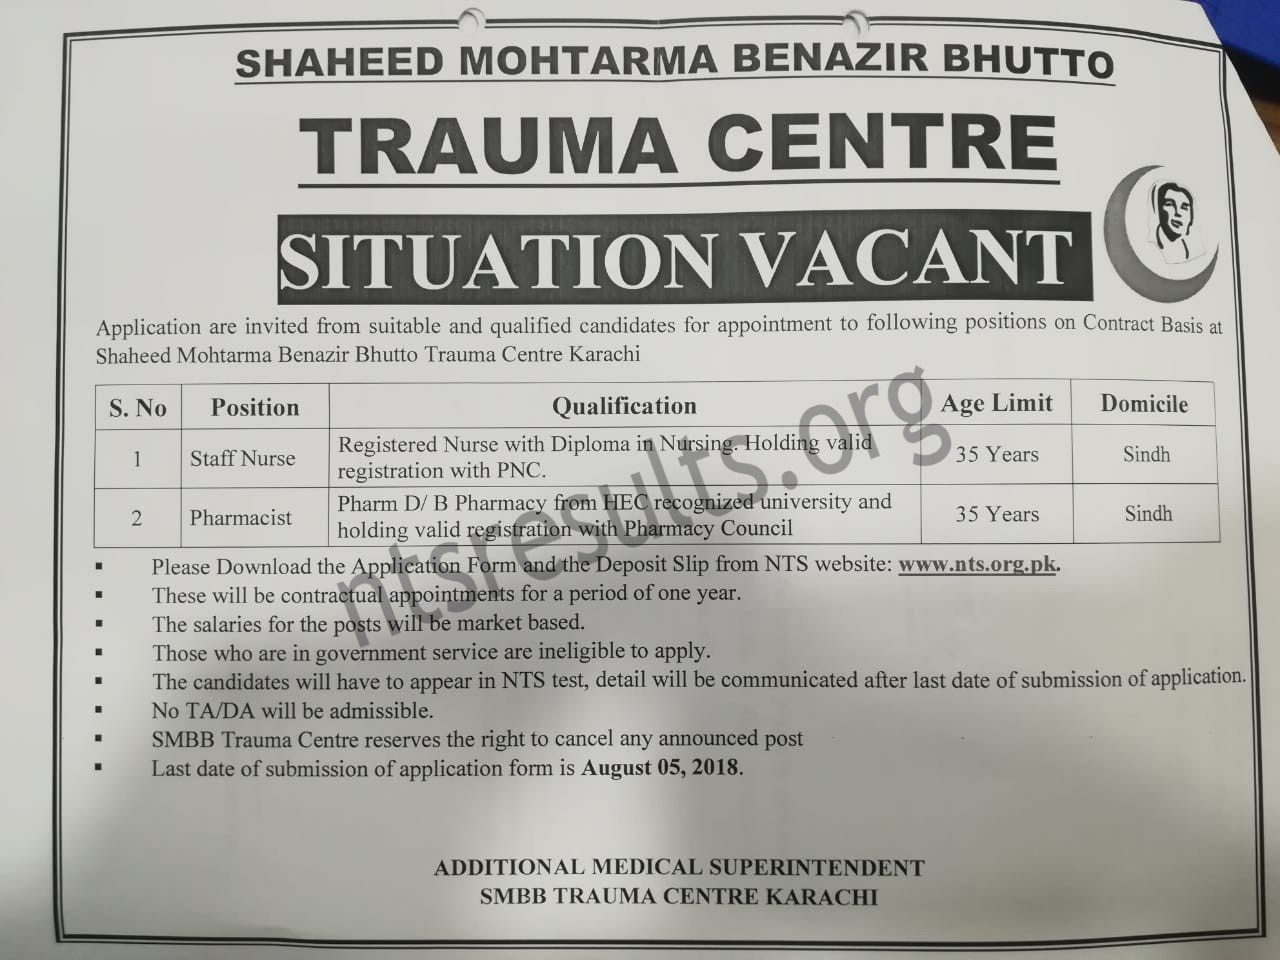 Shaheed Mohtarma Benazir Bhutto Trauma Center Karachi Jobs Via NTS